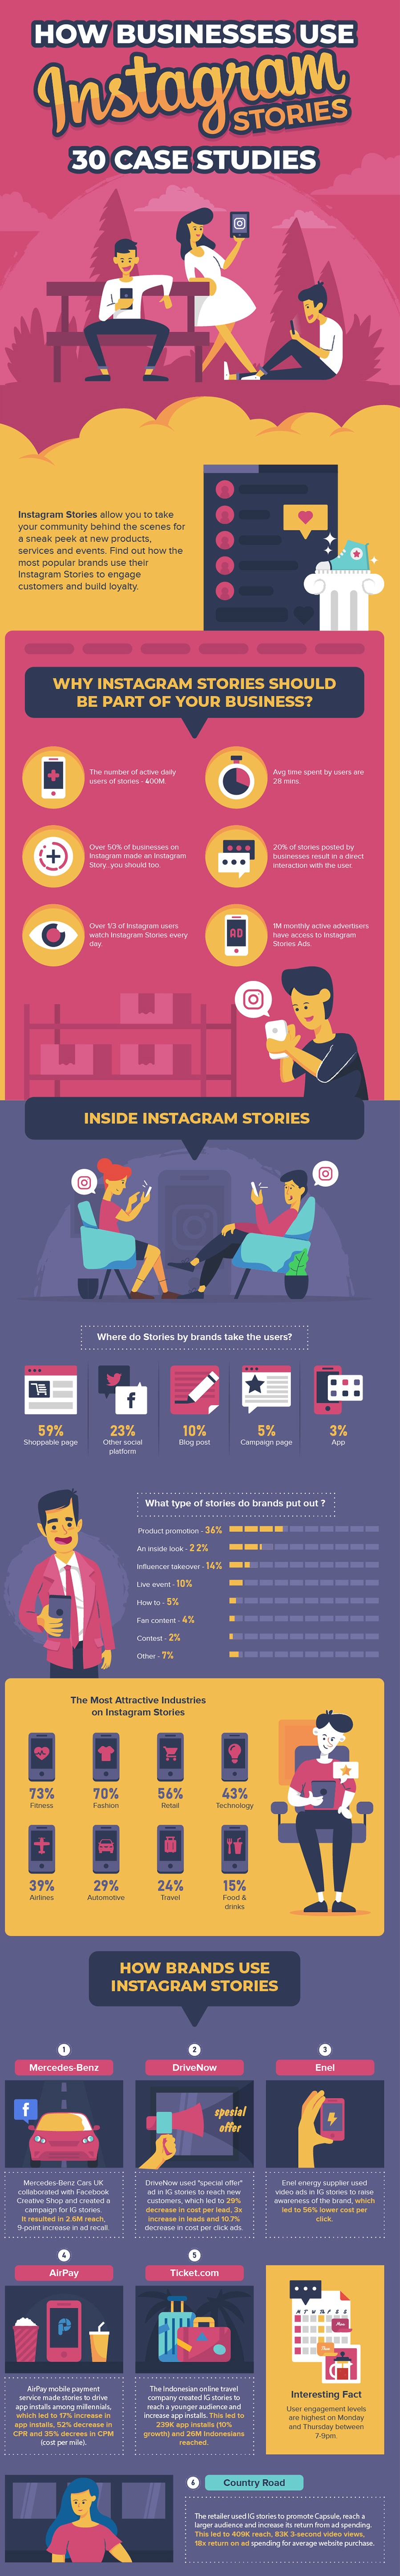 Grow Your Small Business With Instagram Stories